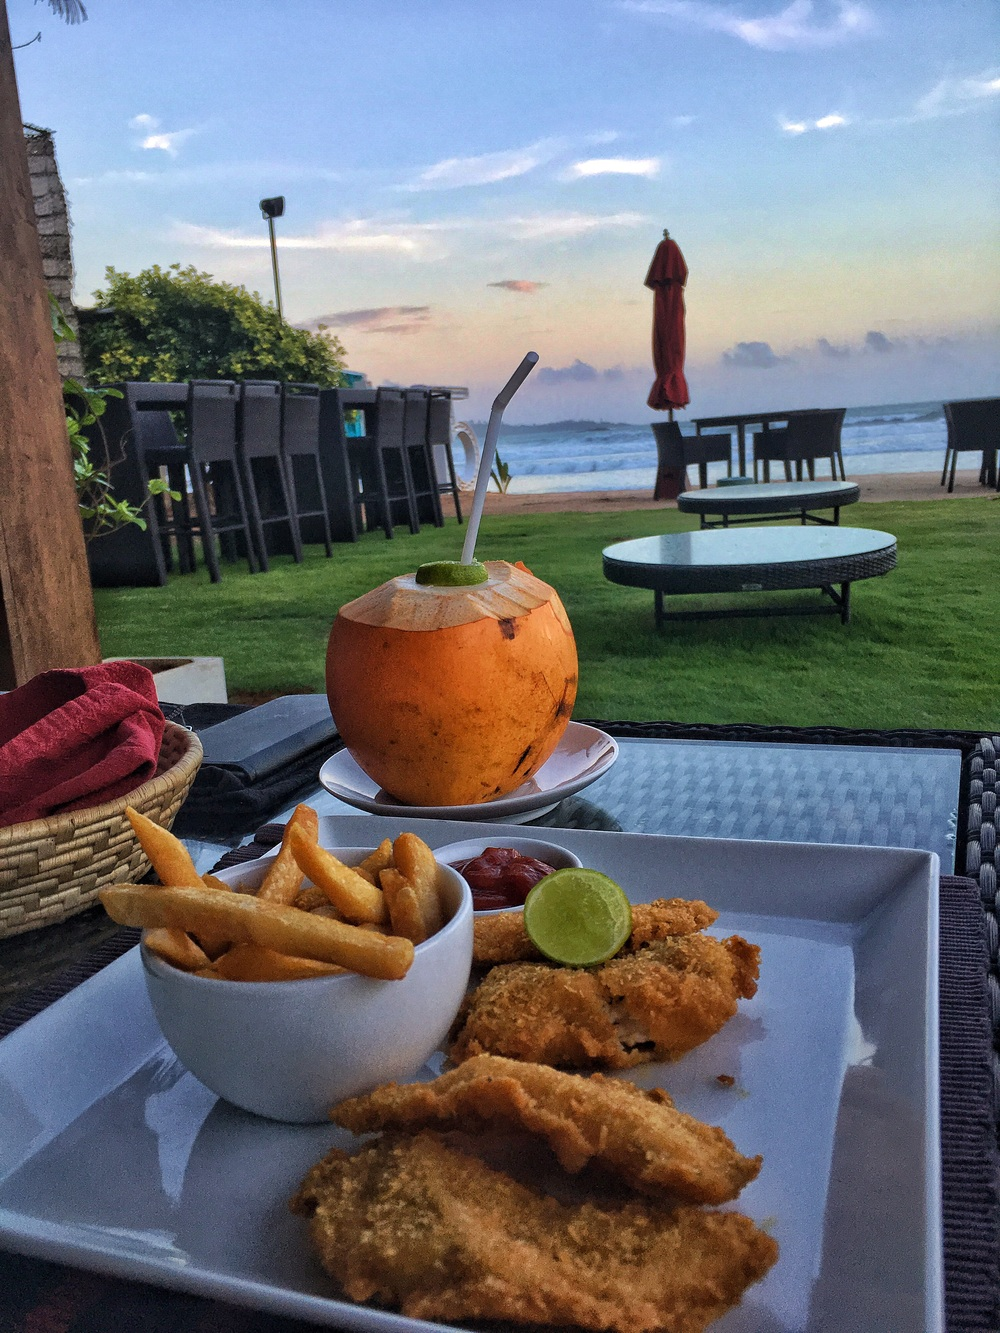 Enjoying the ocean views with some fish and chips and a fresh coconut at W15.